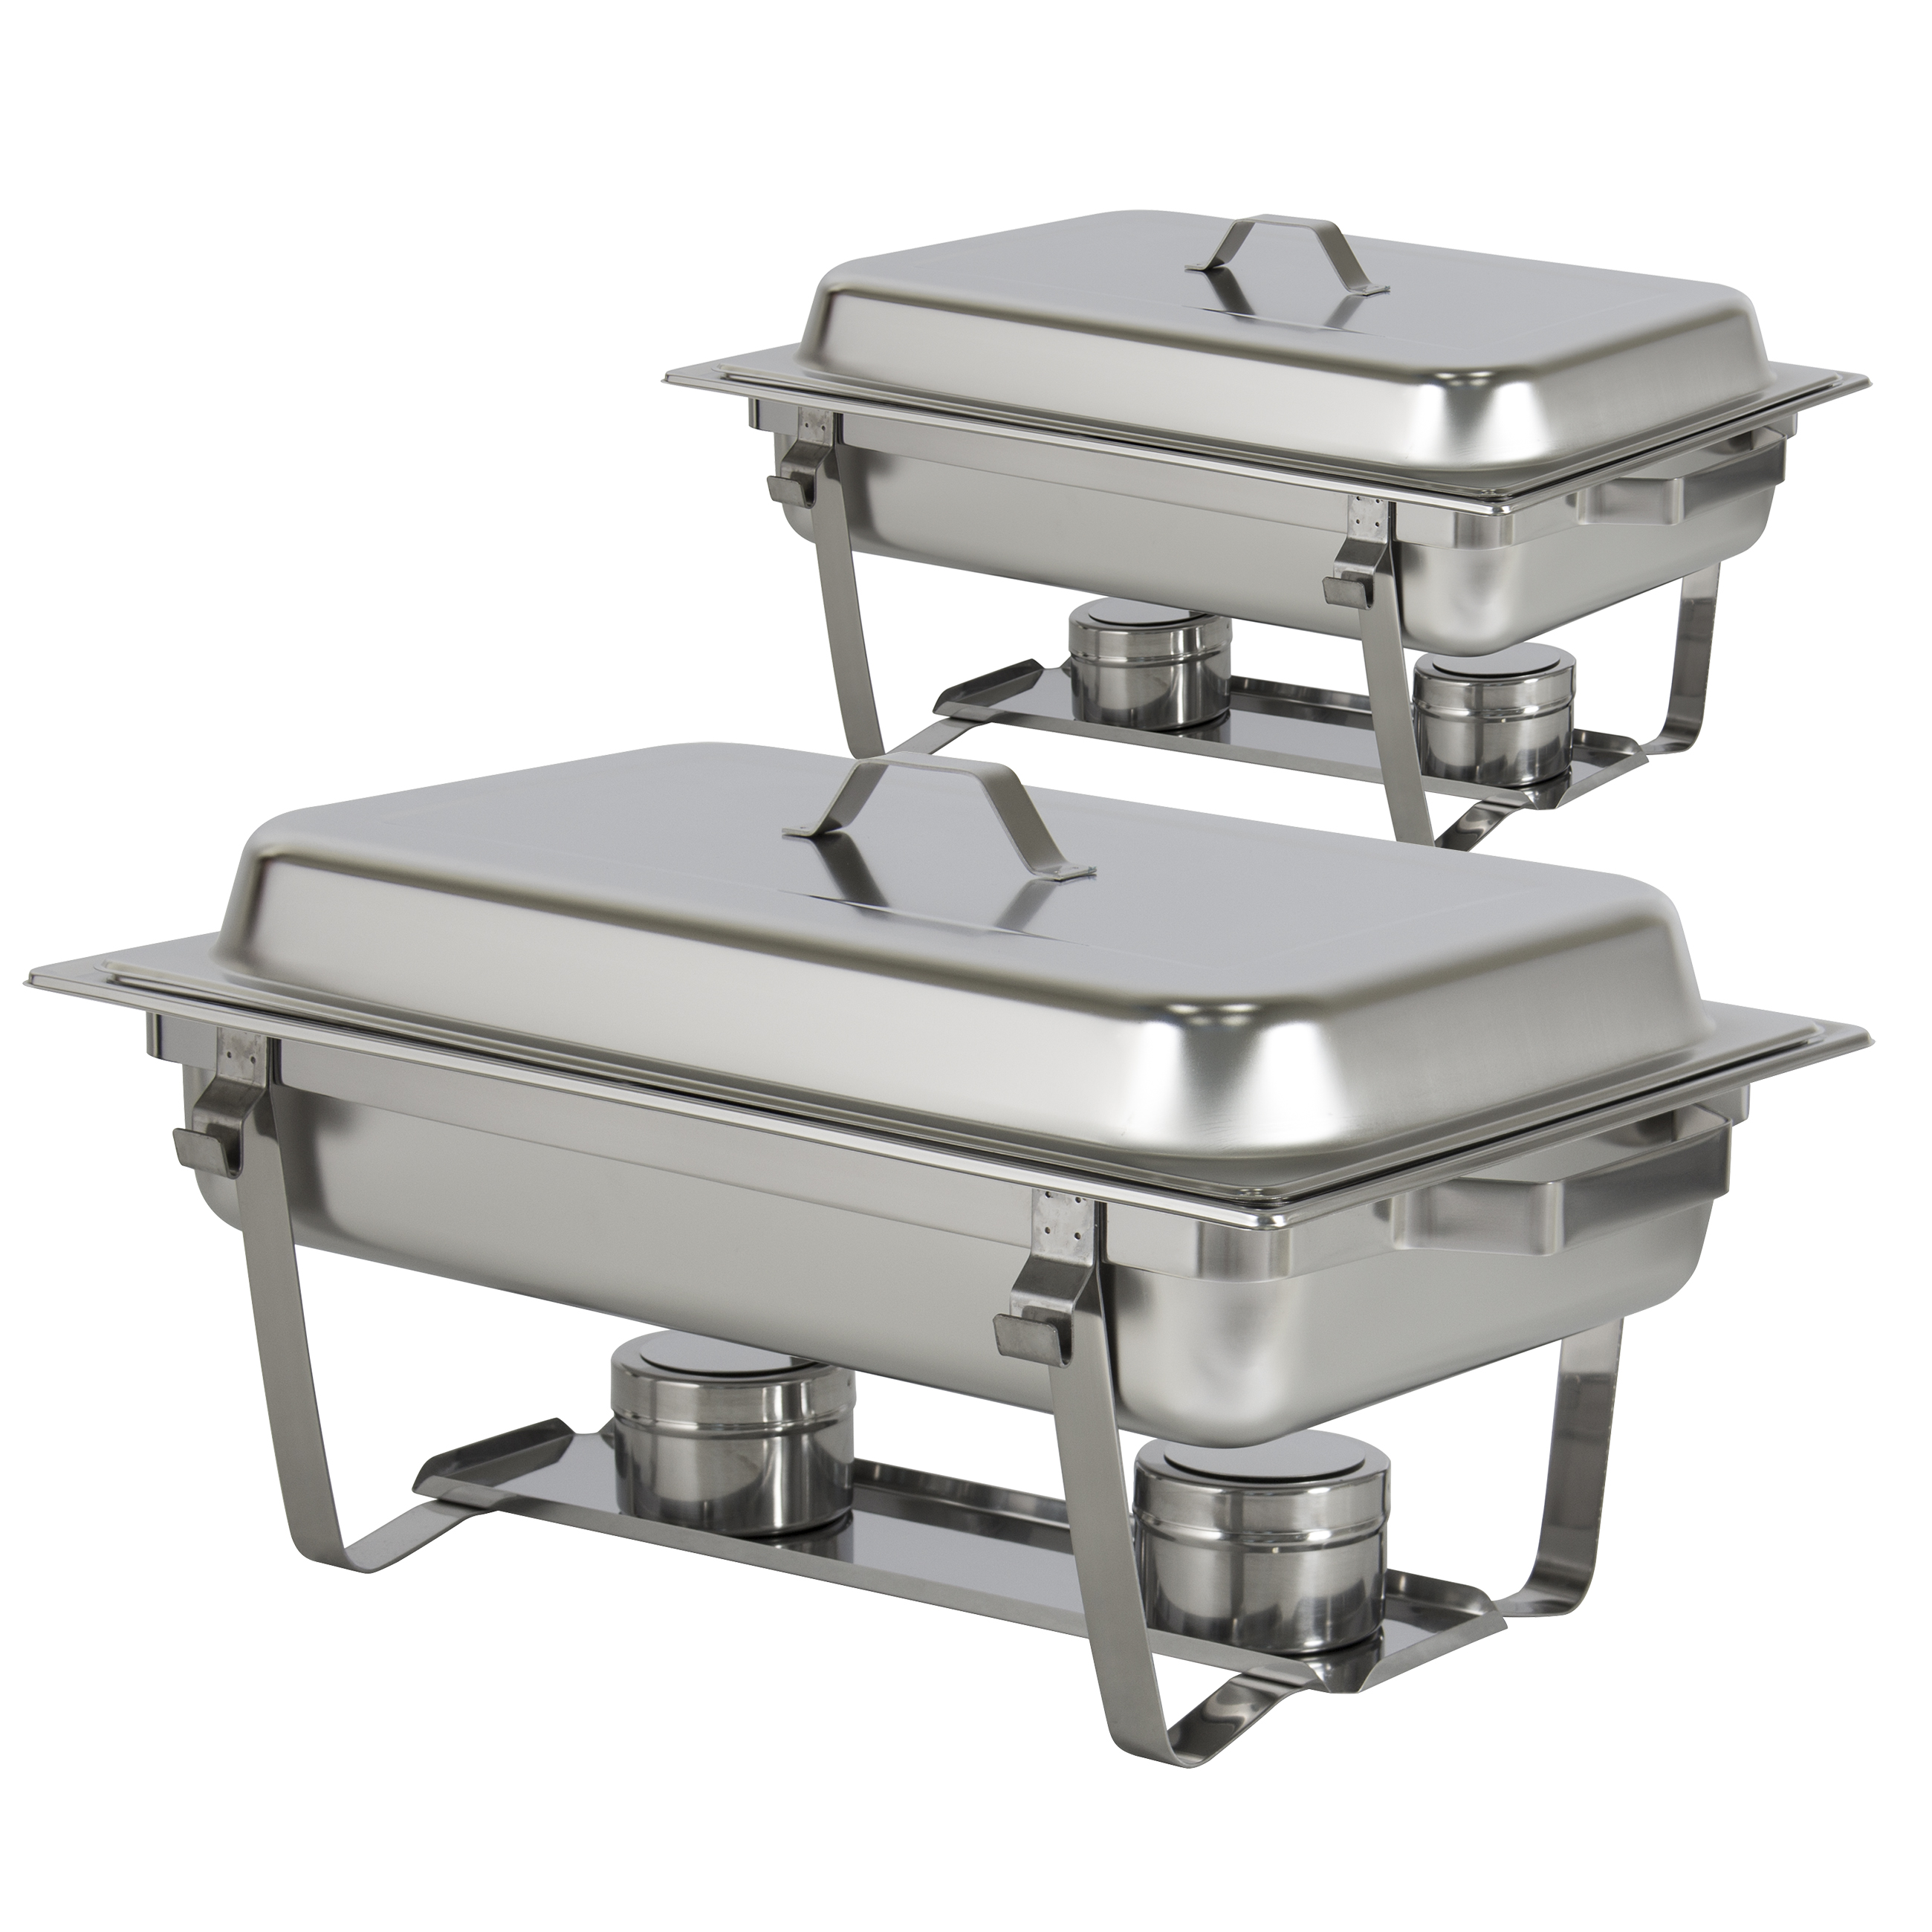 chafing dish set of 2 8 quart stainless steel full size tray rh ebay com disposable buffet chafing dish set costco chafing dish buffet set target